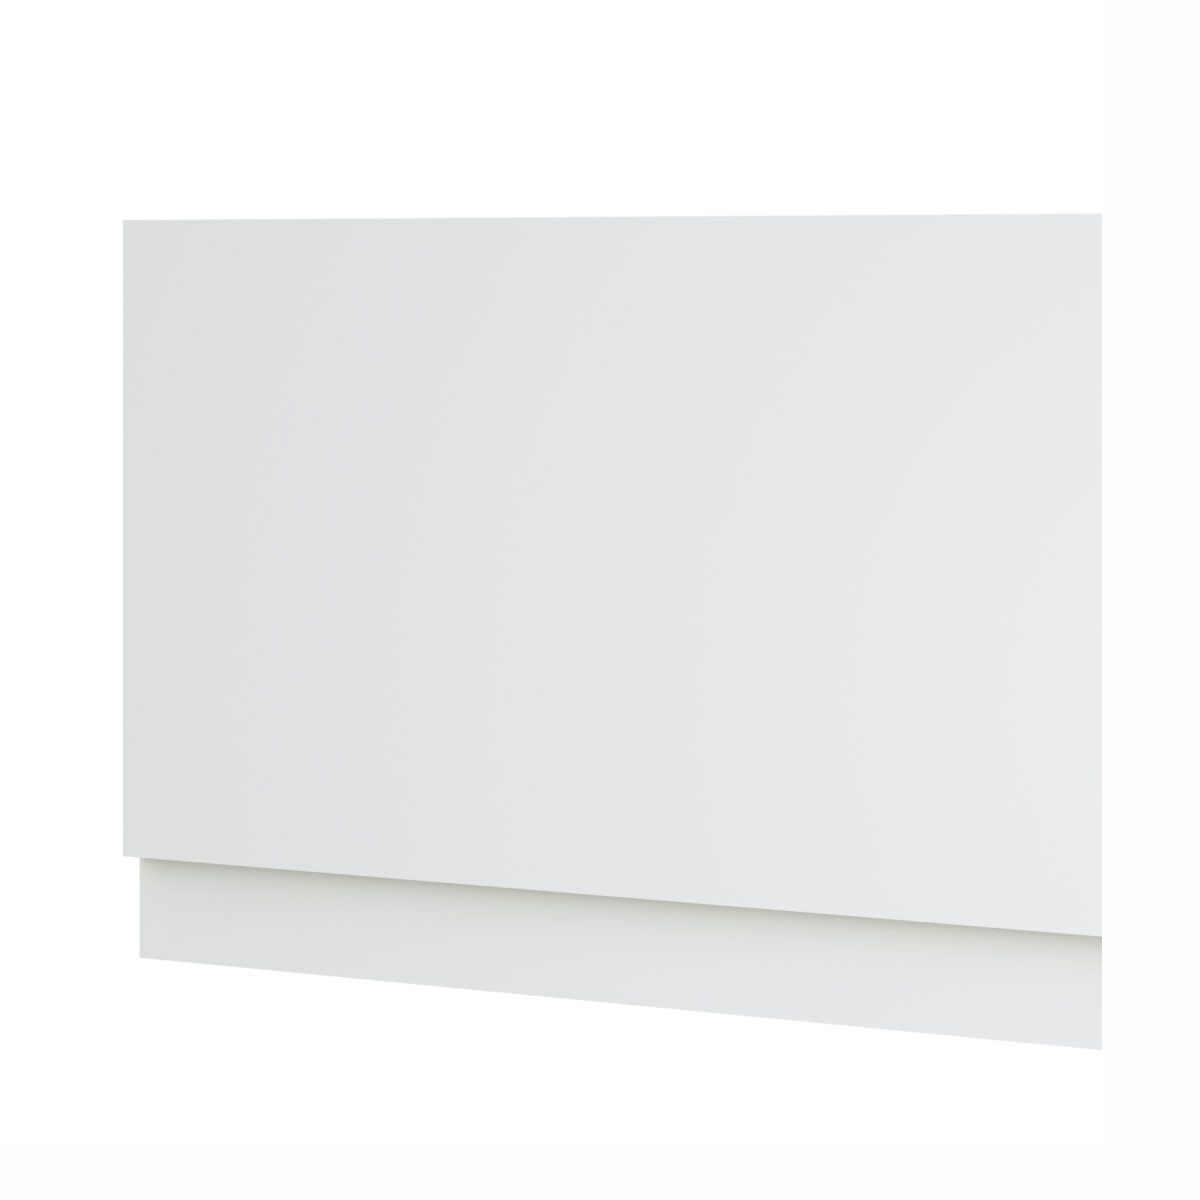 Kartell Purity White 2 Piece Bath End Panel 800mm